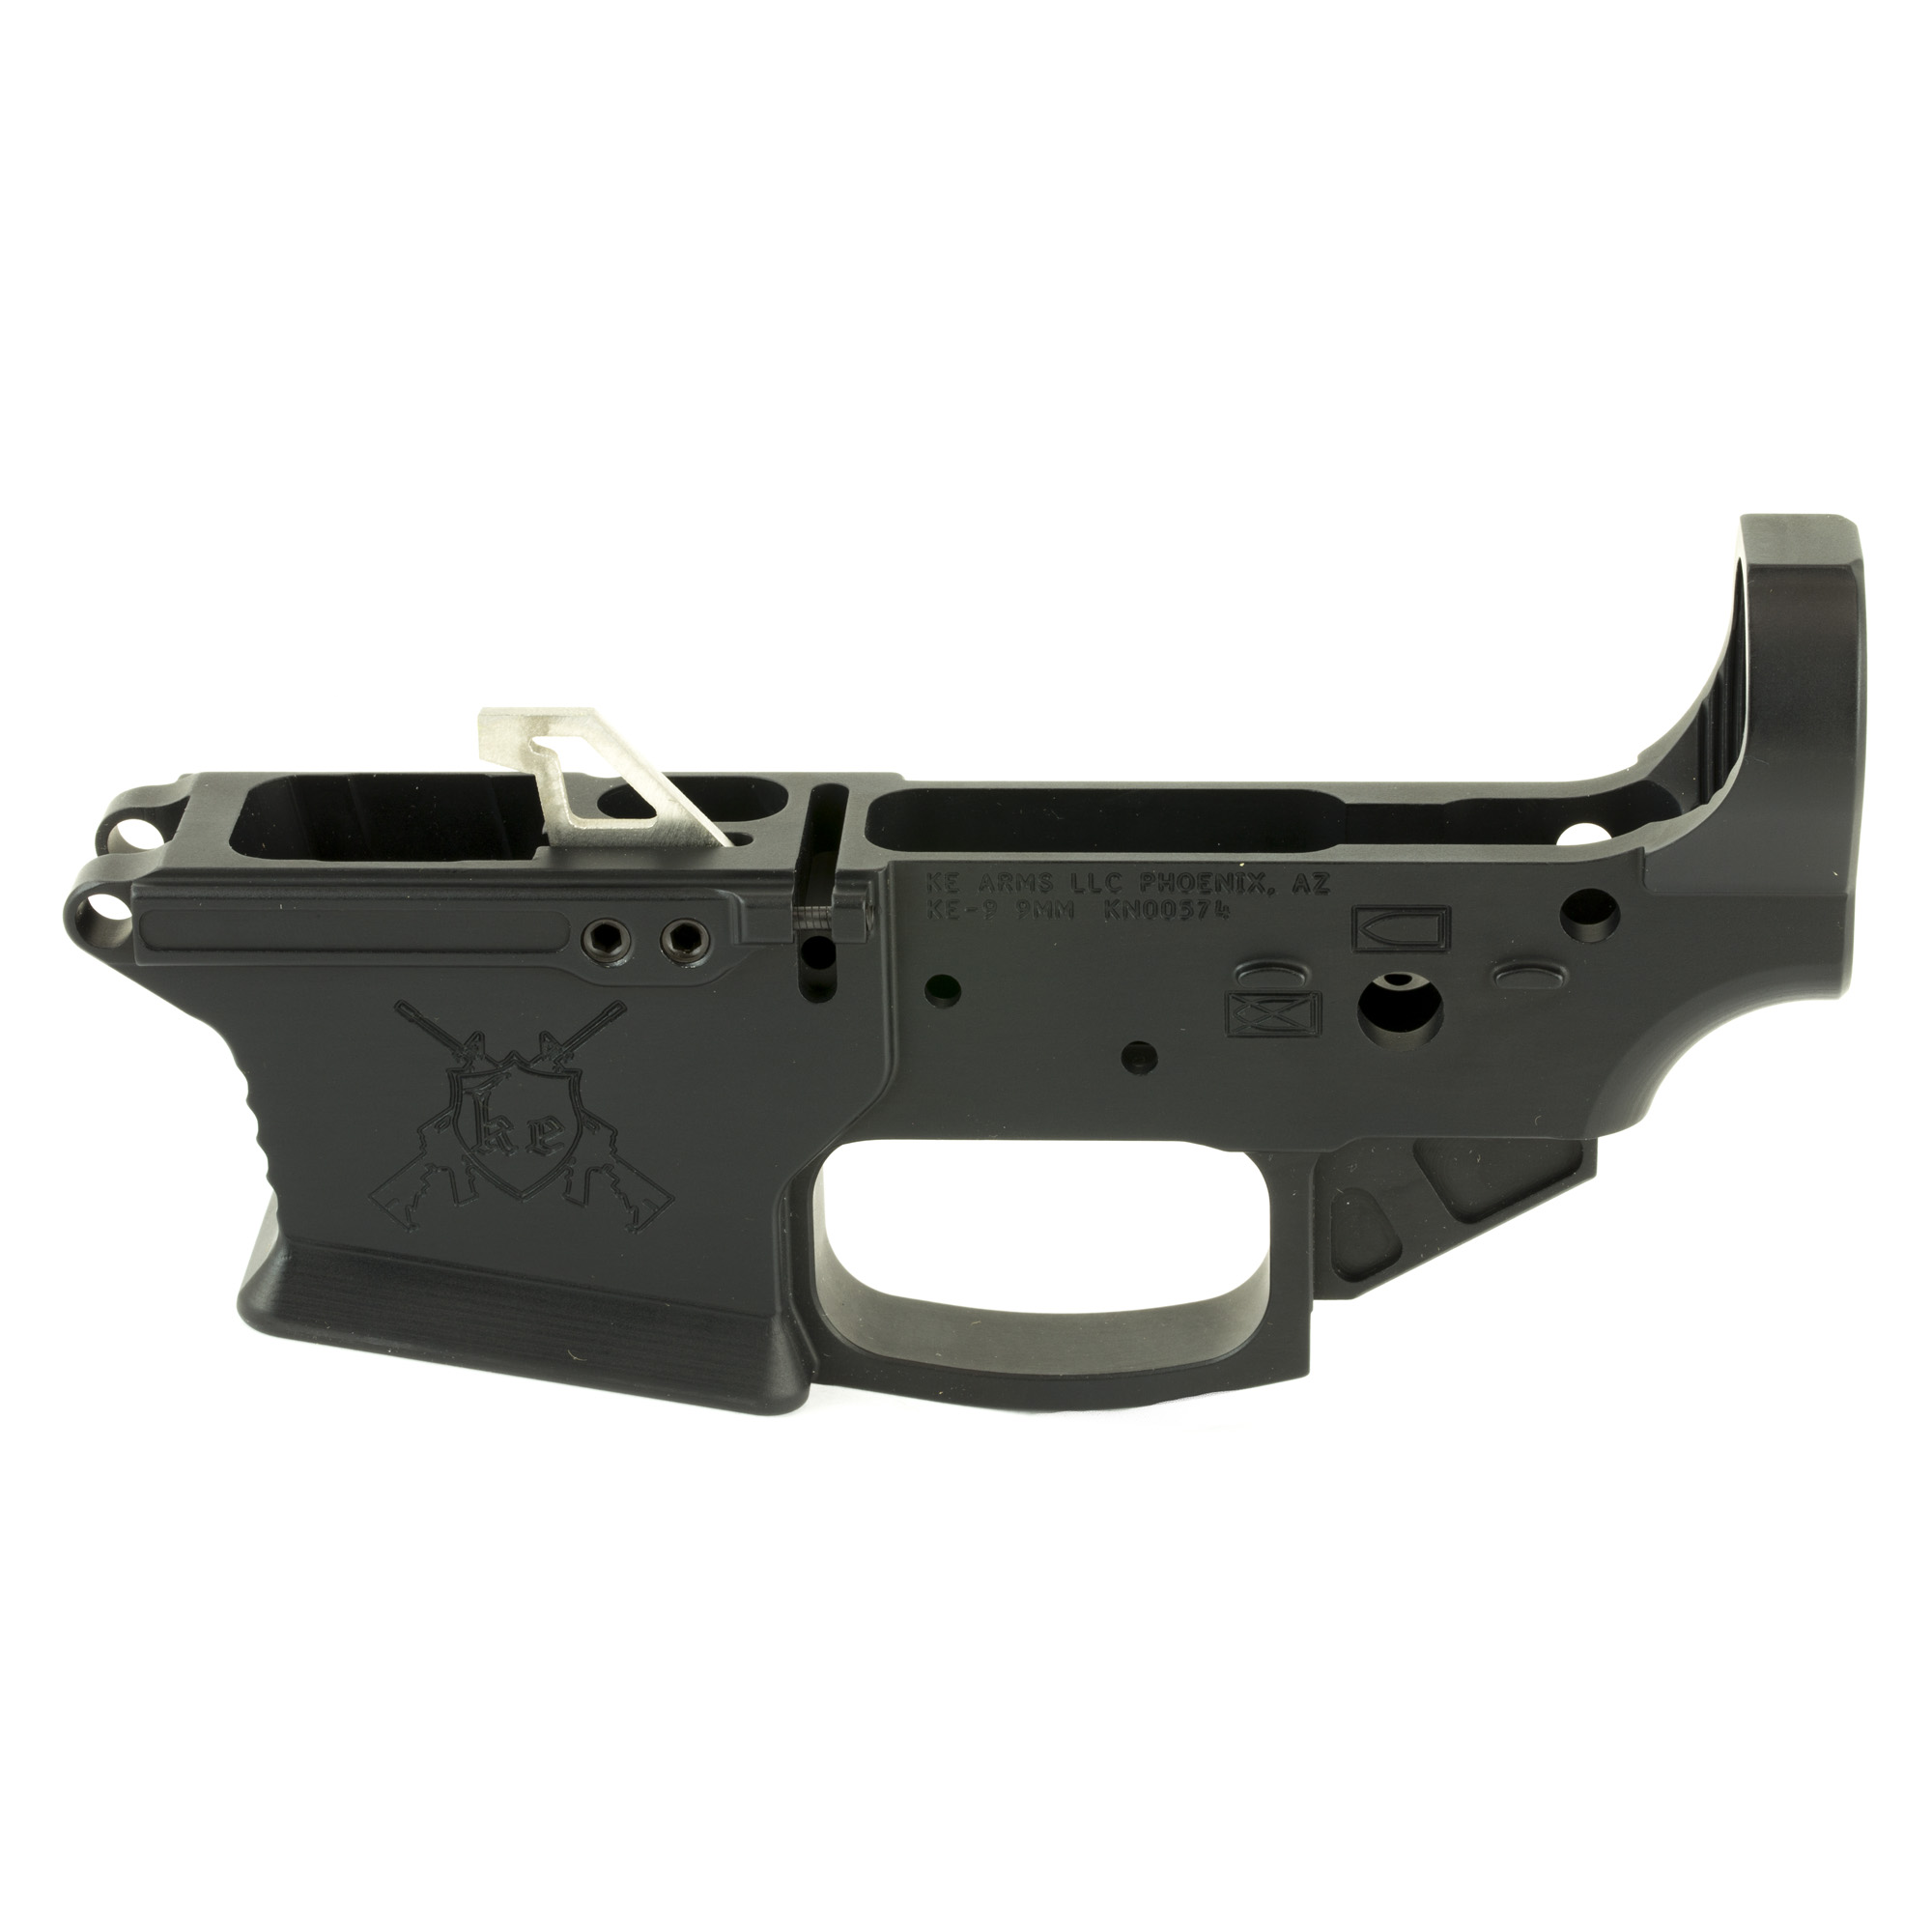 The KE-9 Billet lower receiver is precision machined in-house from hi-grade 7075 billet master plate to milspec standards making it compatible with most milspec 9mm uppers. The KE-9 accepts Glock OEM and after market Glock style magazines.